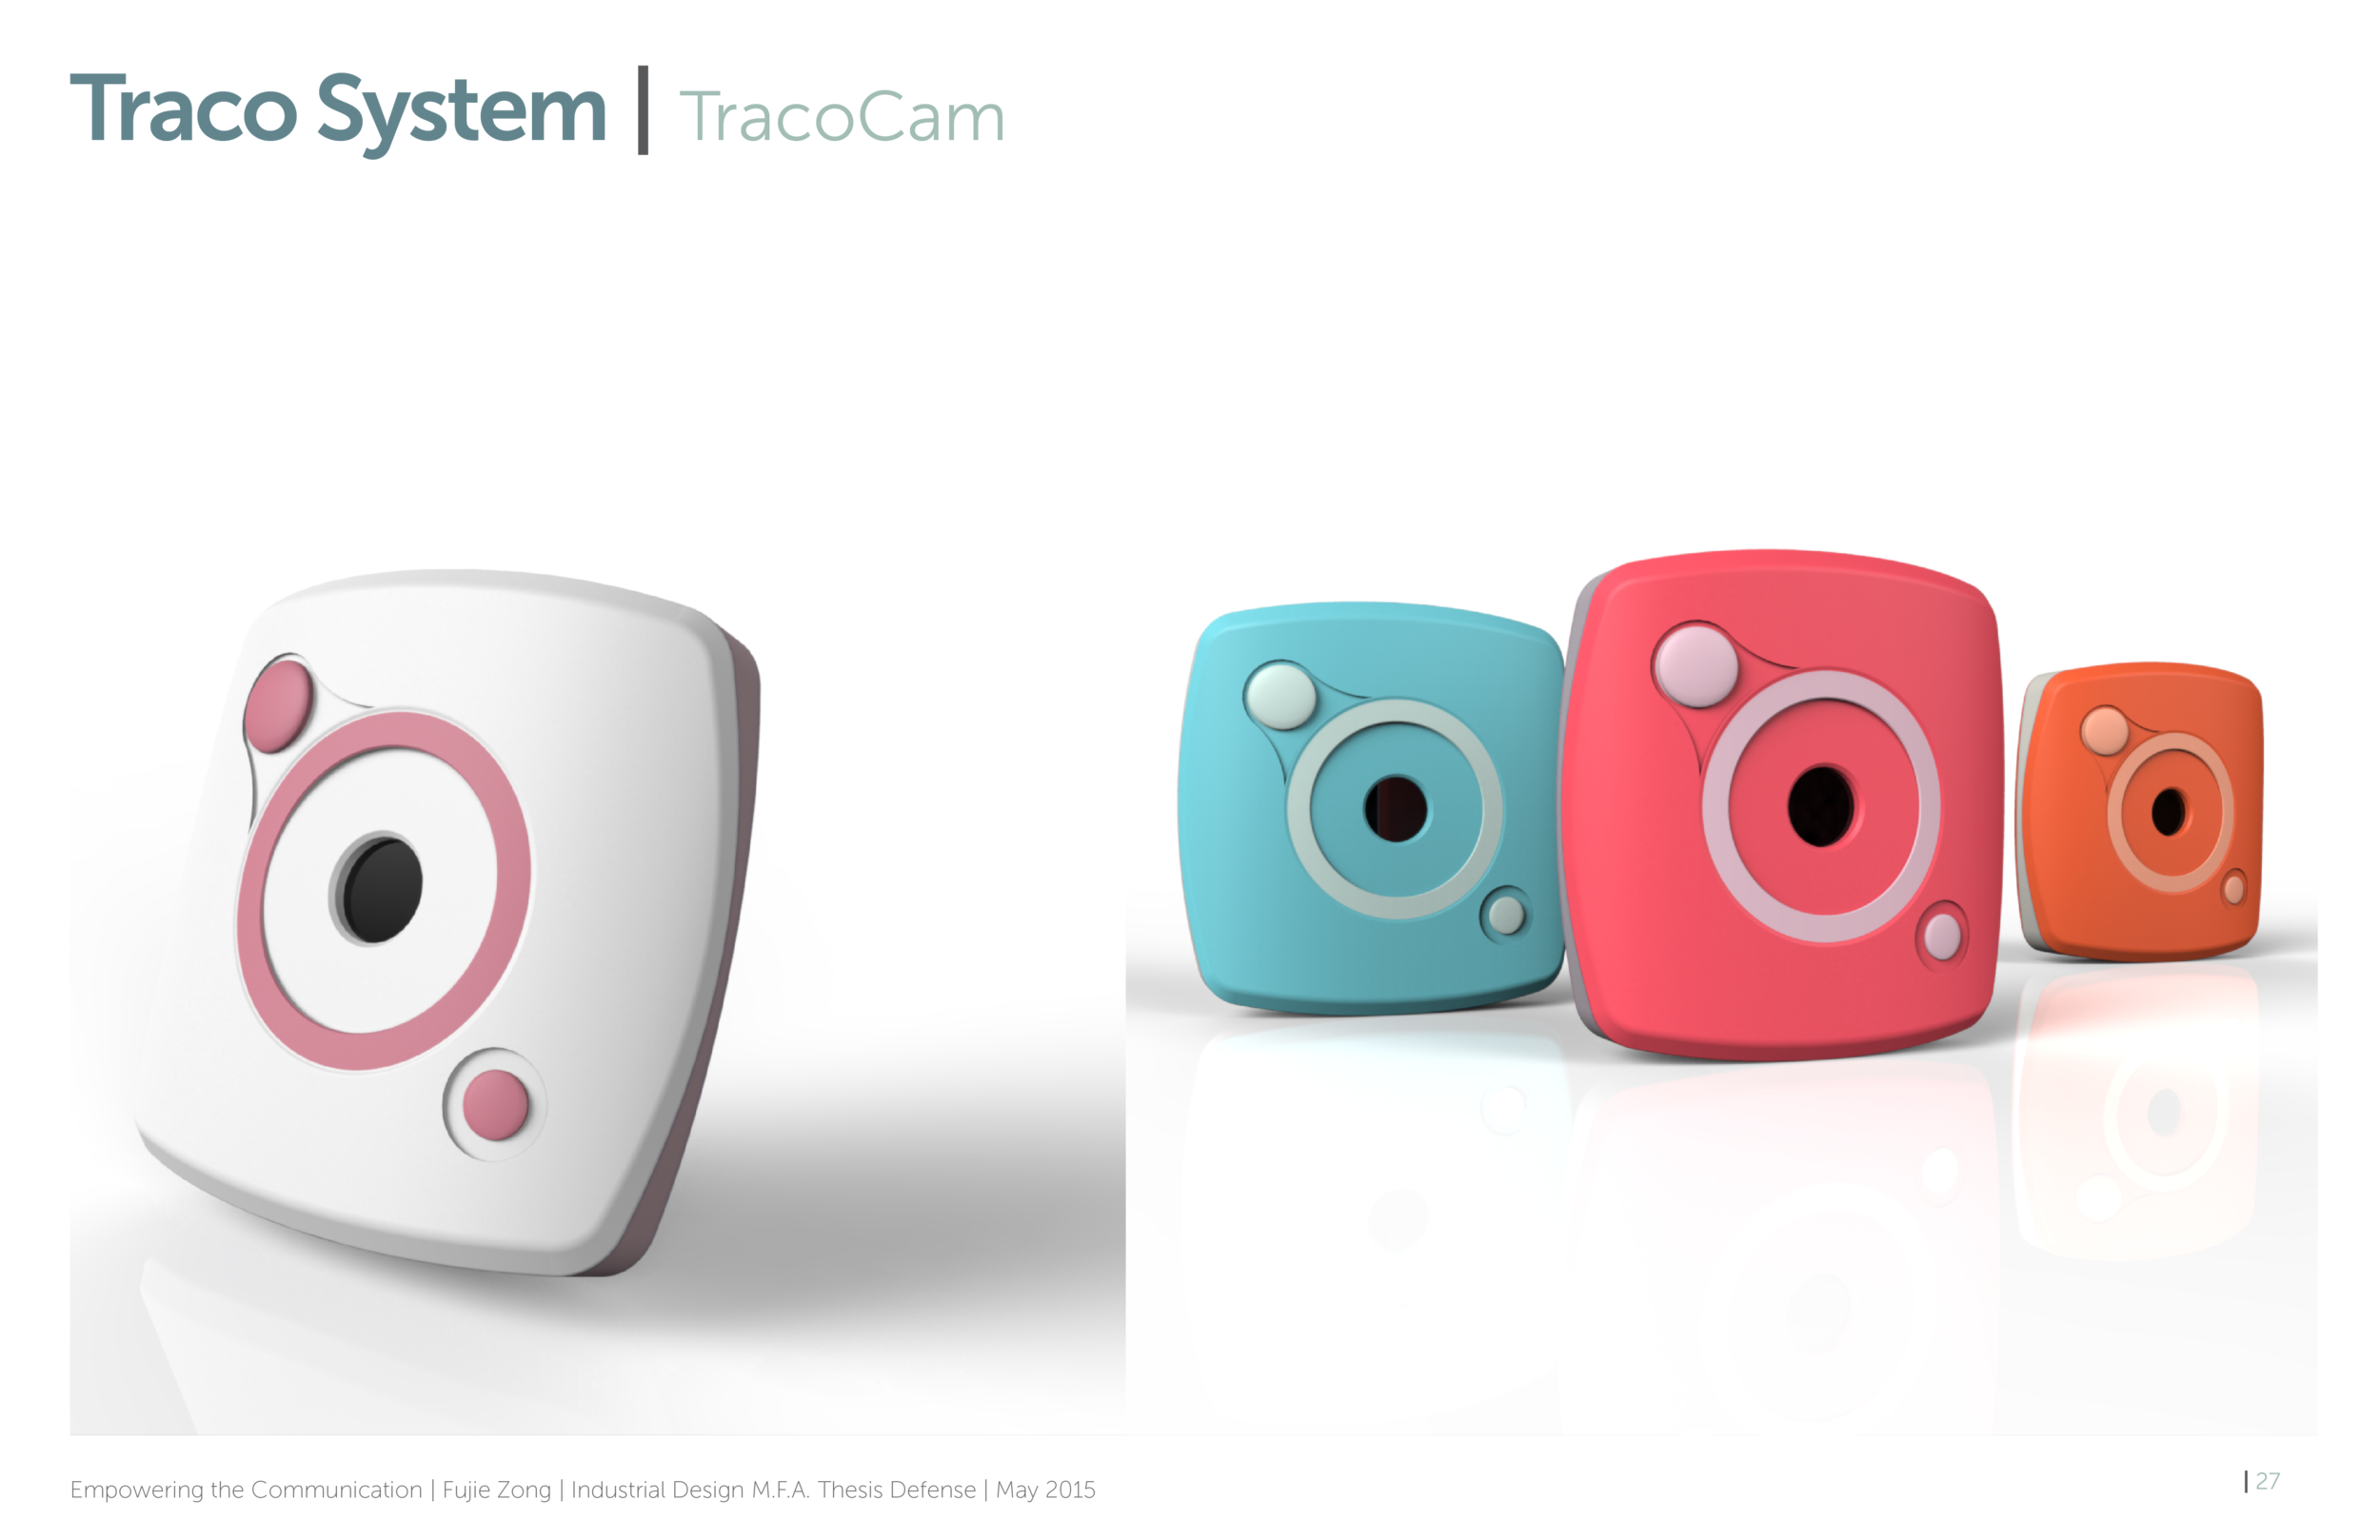 TracoCam - a camera that clips on child's shirt for recording purpose. Combining the vision captured here, together with the data ofmovement, parents can share the vision and understand their activities much better.